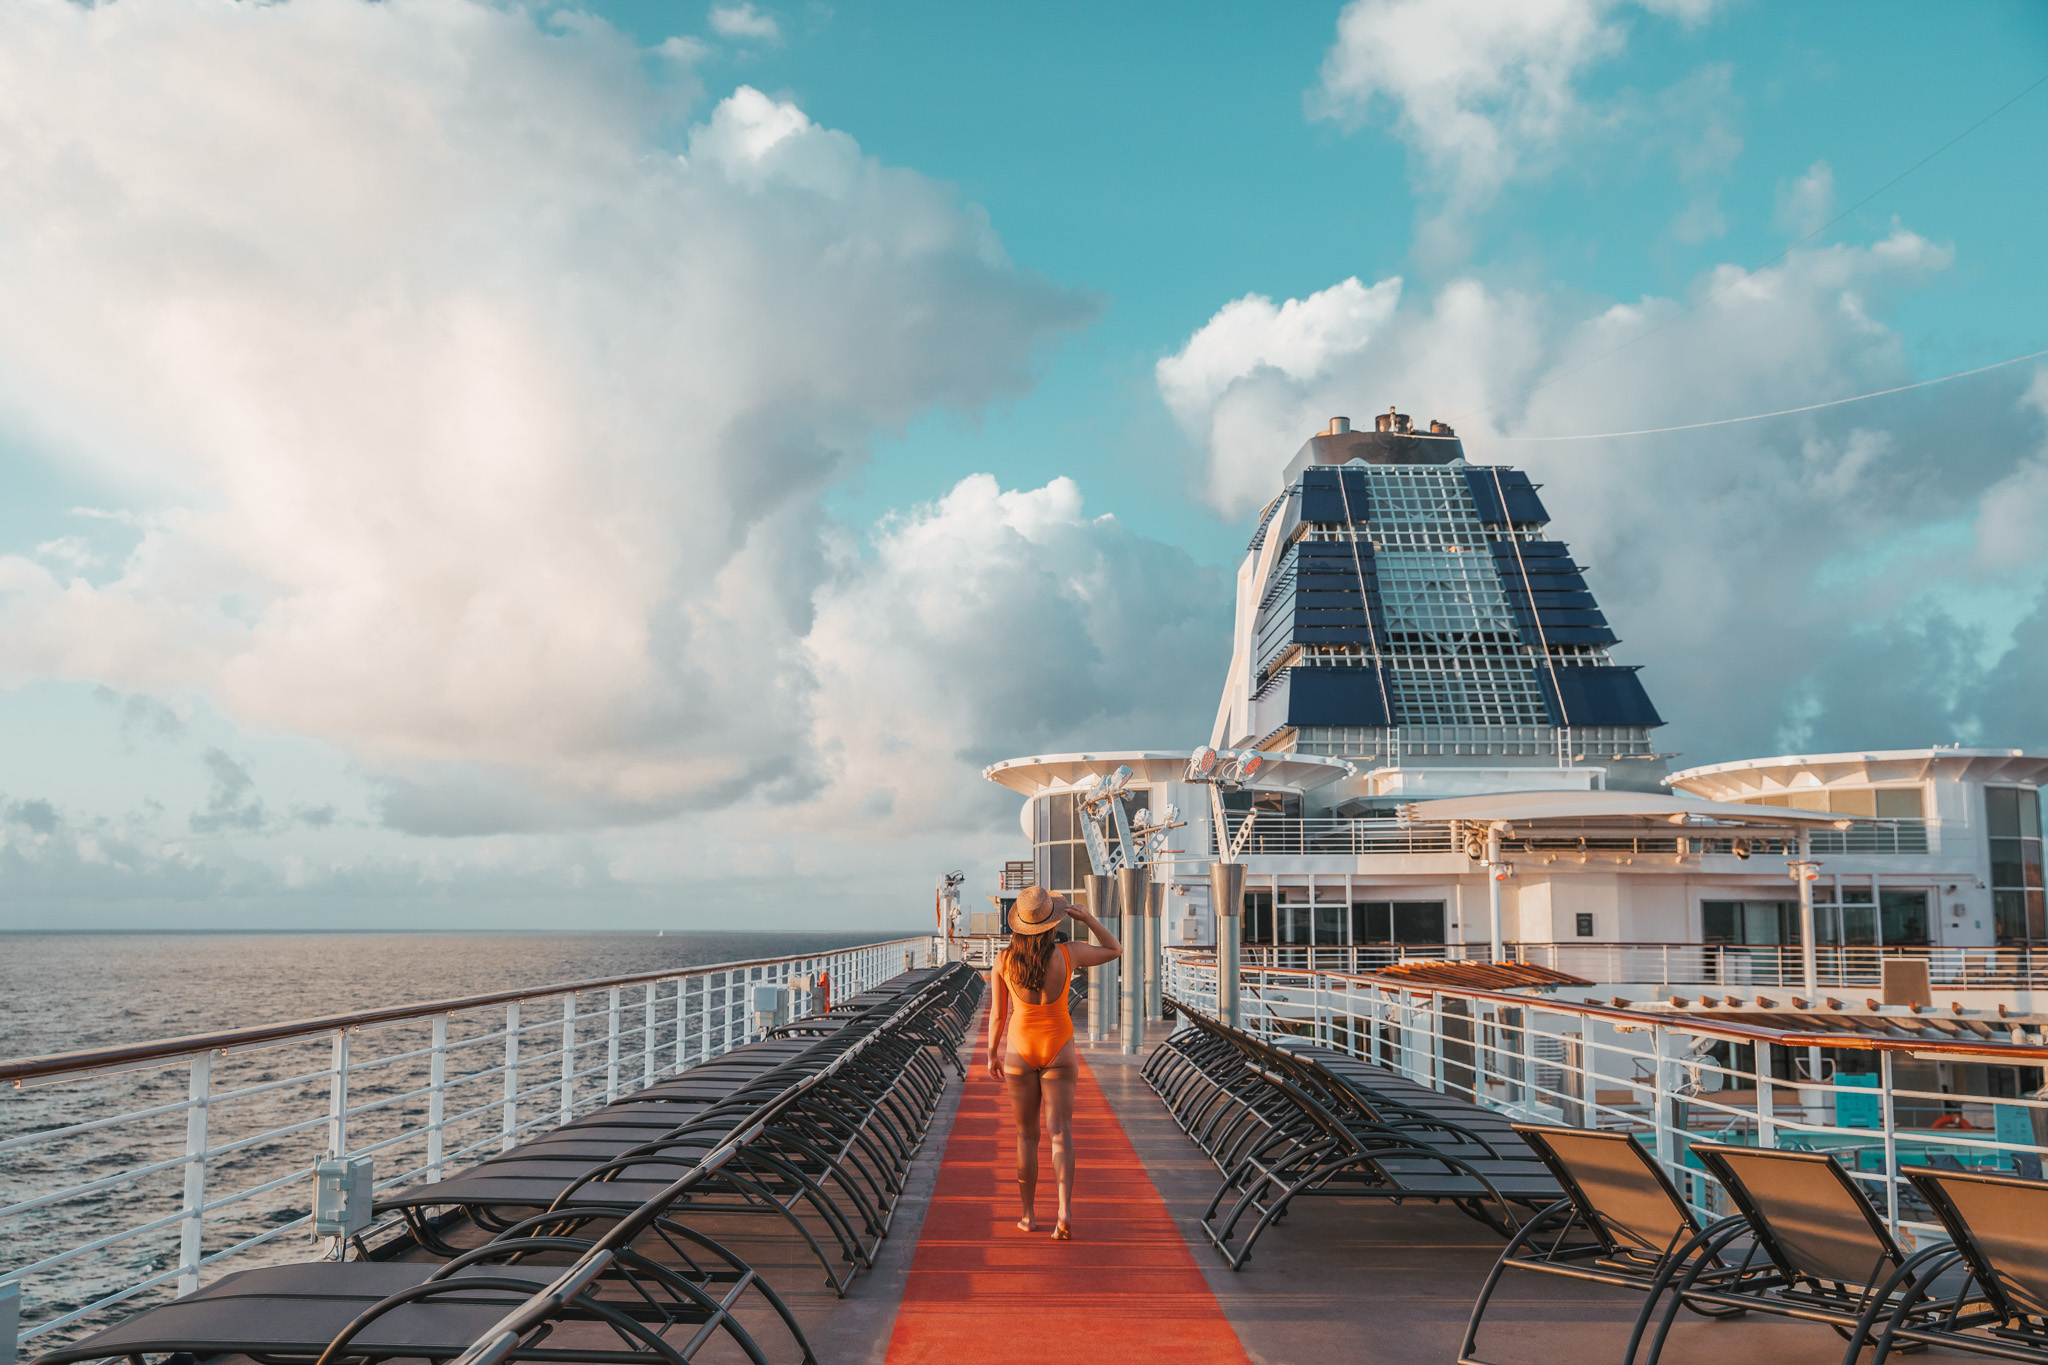 Deck 11 sunbathing area above the pool // Cruise Review: Everything You Need To Know About The Celebrity Summit